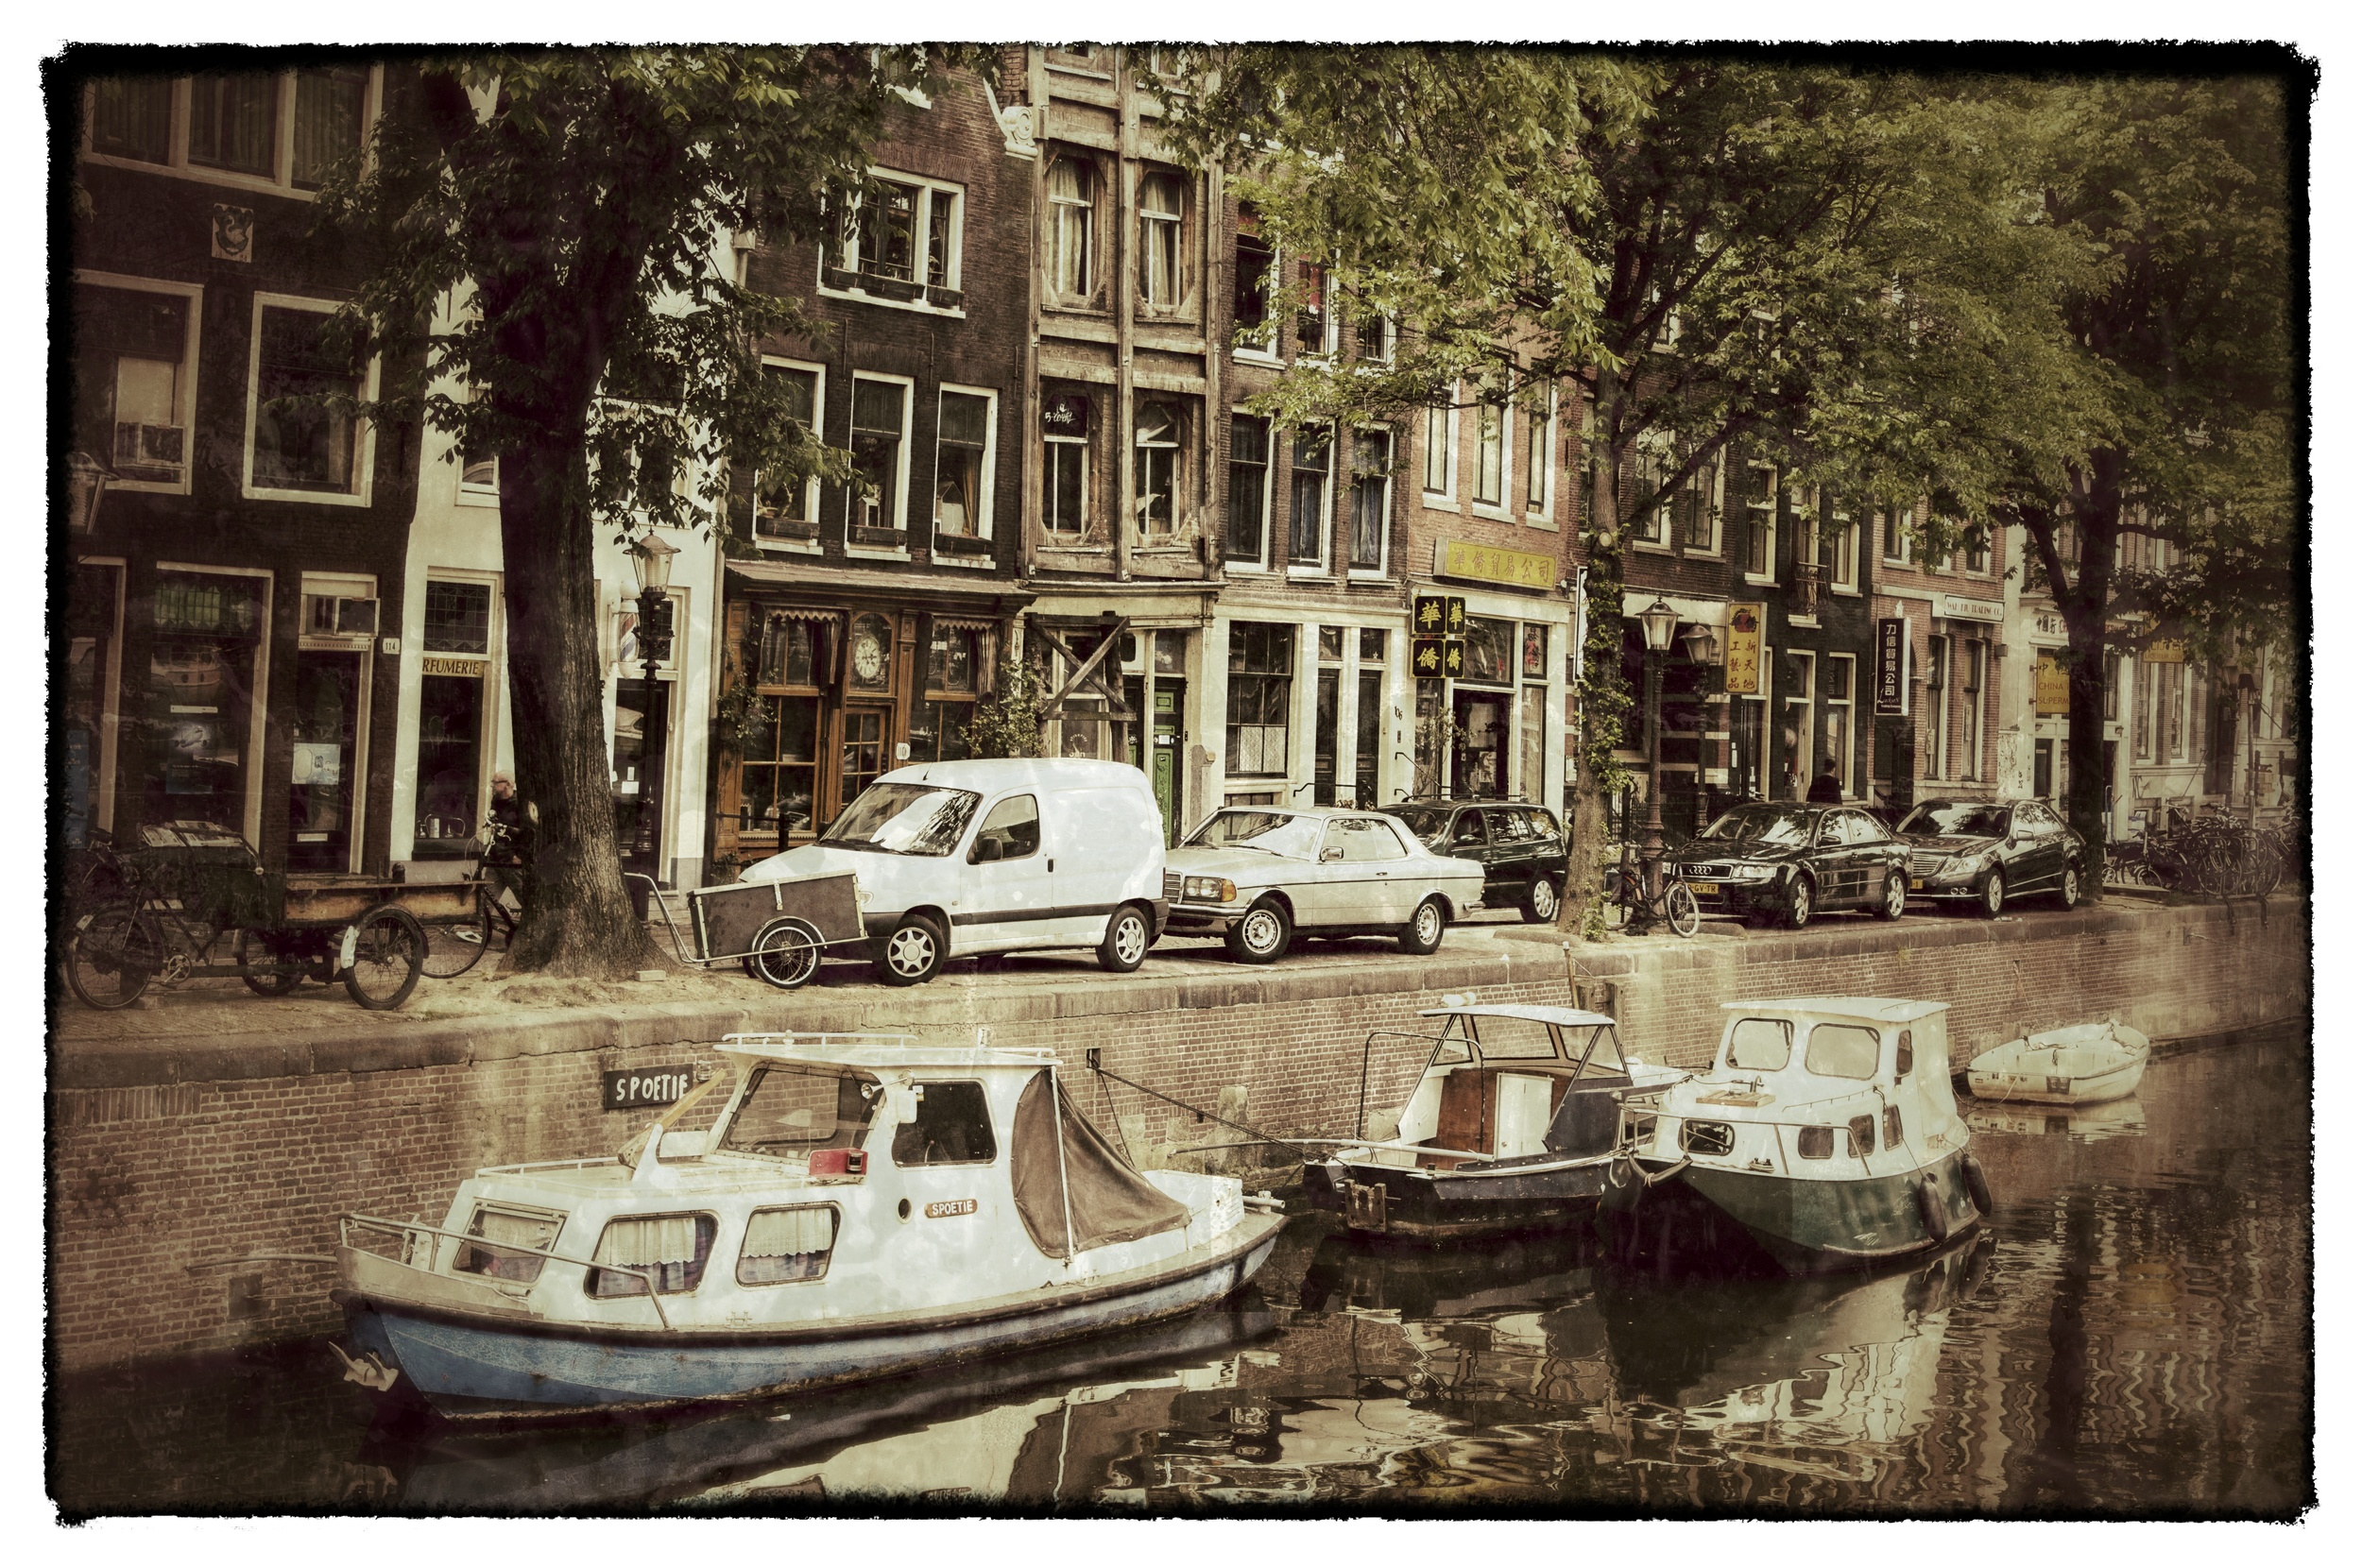 Amsterdam_TCL_20120601_0071-Bearbeitet_Snapseed